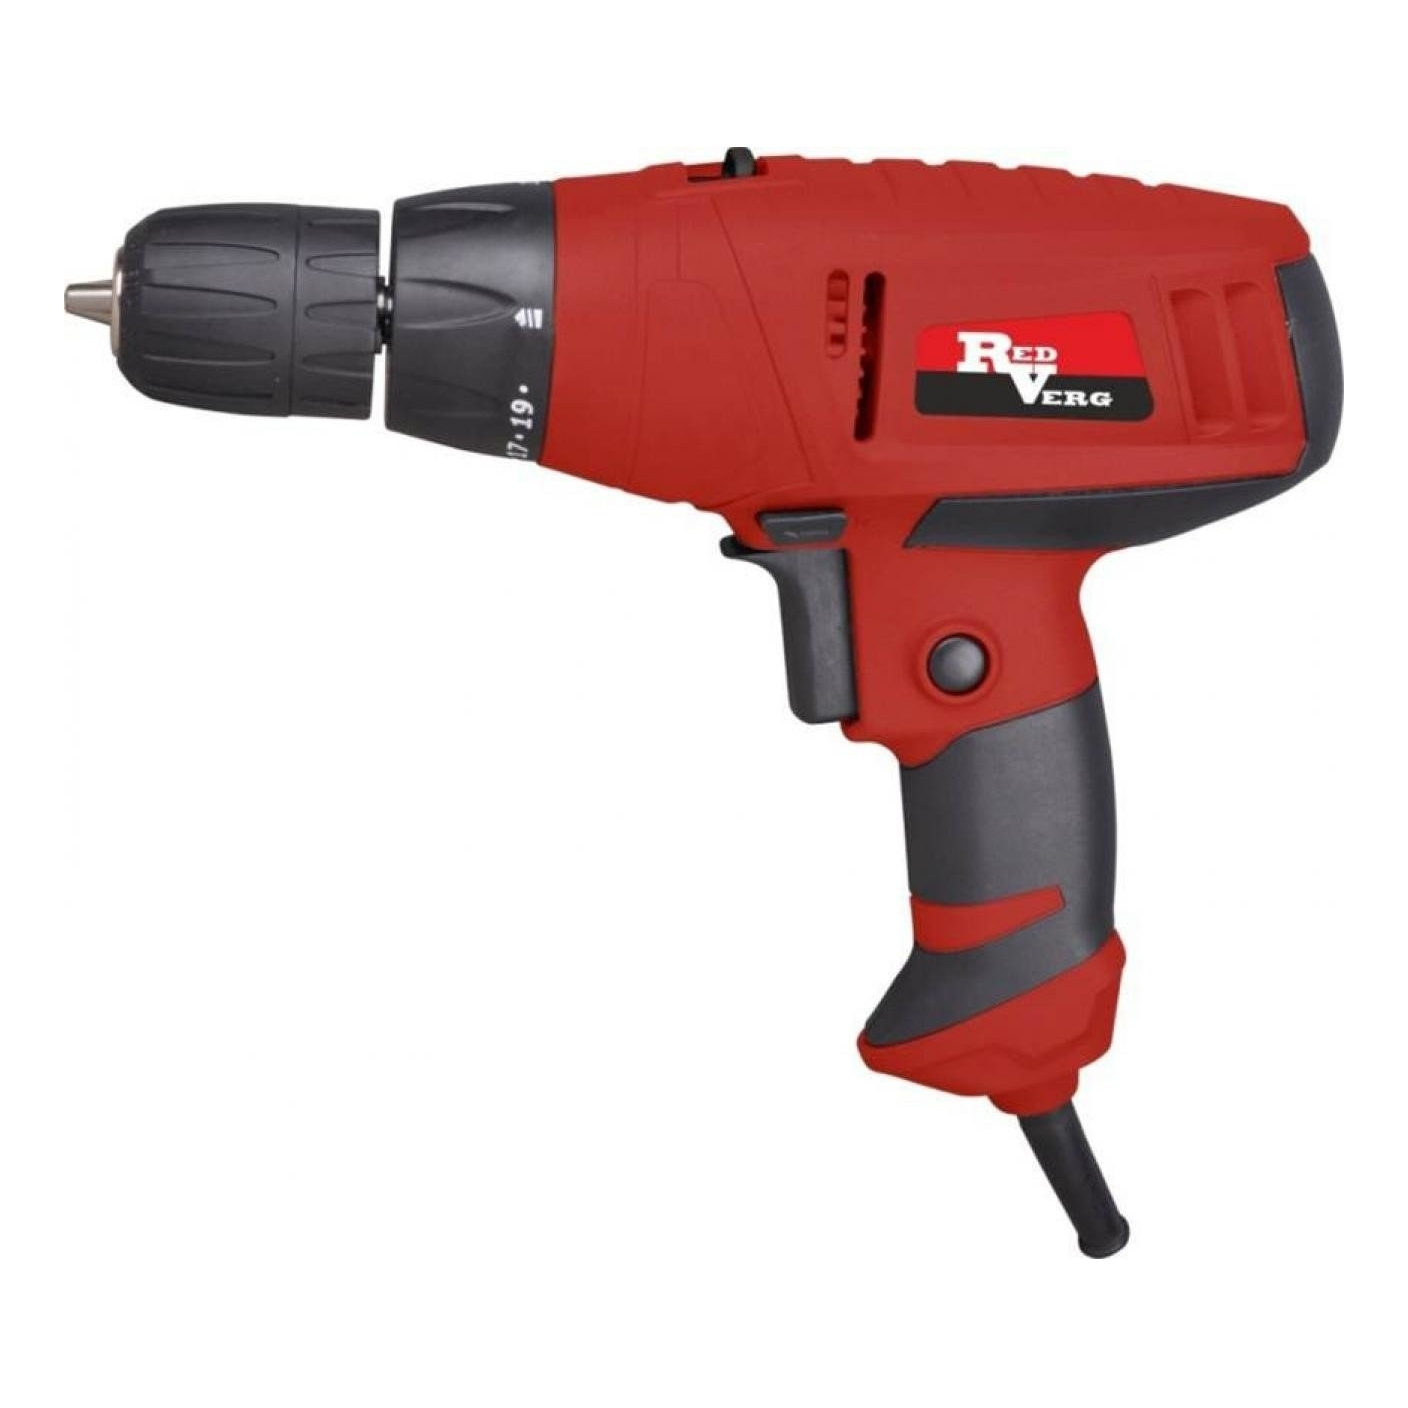 Drill electric screwdriver electric RedVerg RD-SD330/2 (Power 330 W, torque 15Нм, 2 speed) hammer drill electric redverg rd rh1500 power 1500 w drilling in concrete to 36mm антивибрационная system